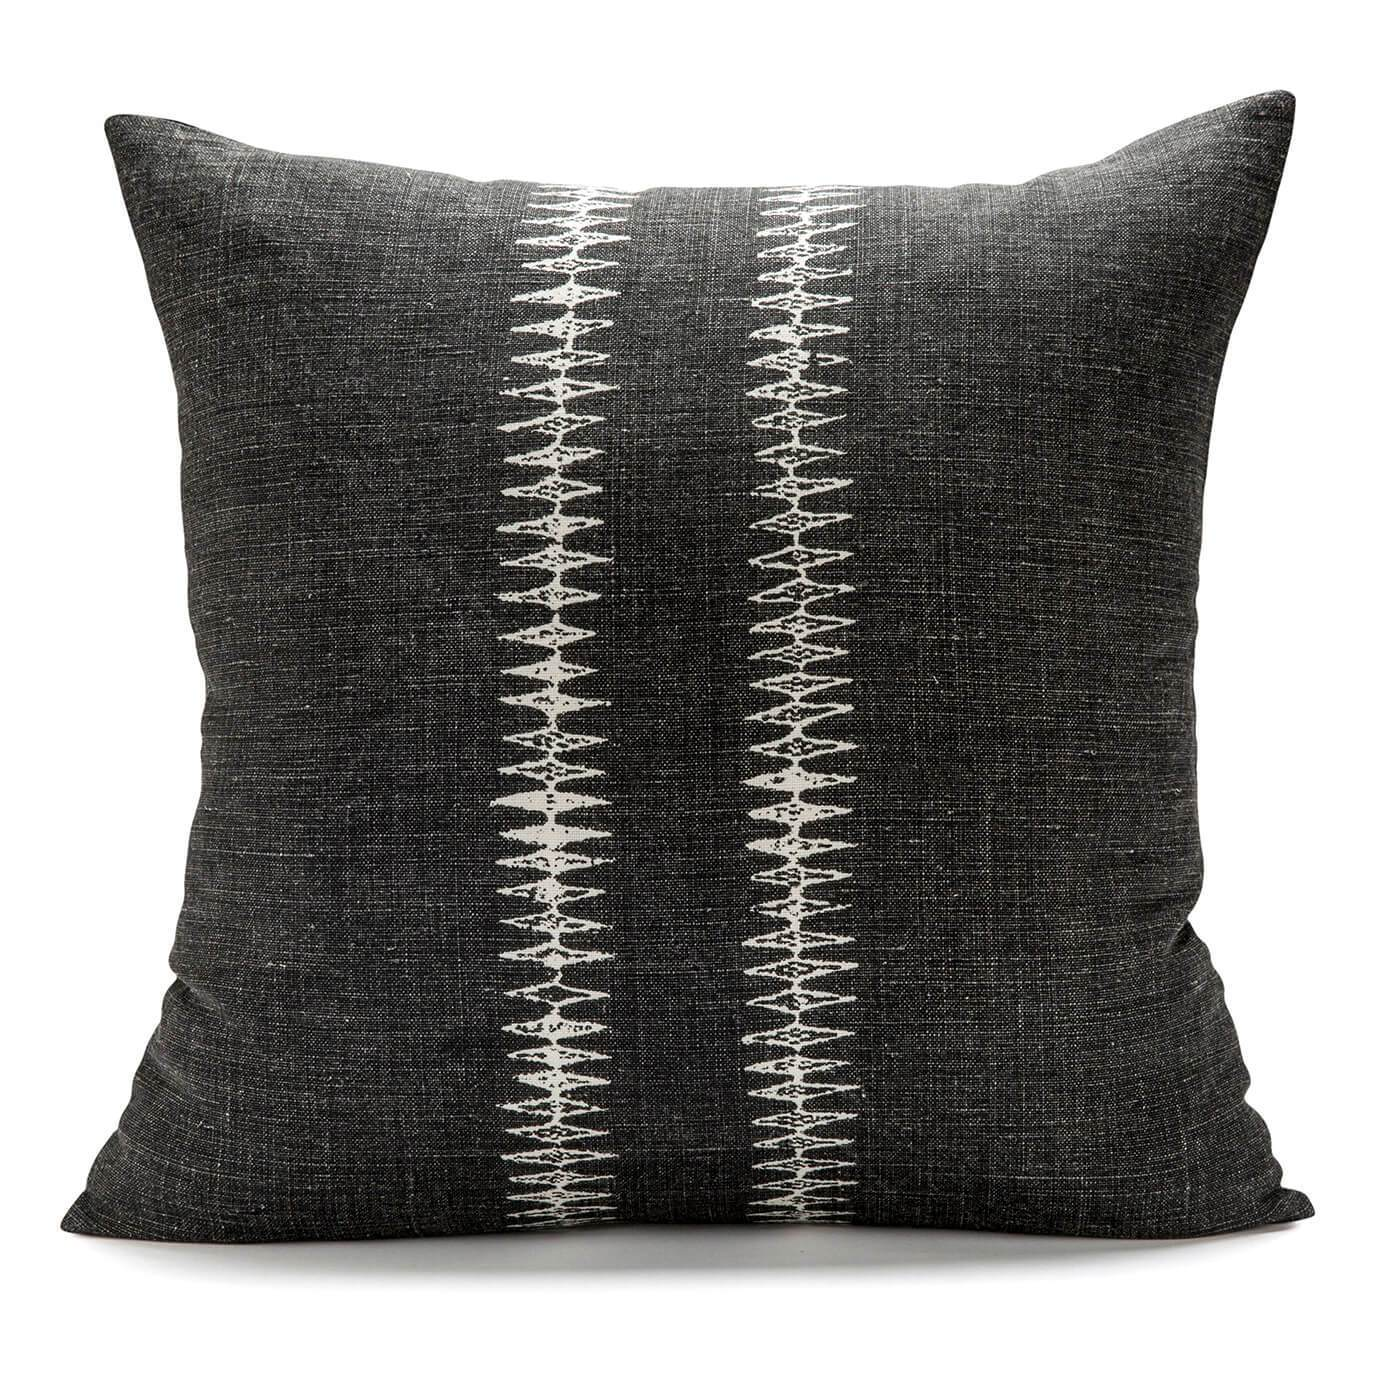 Sound Dark Charcoal Pillow